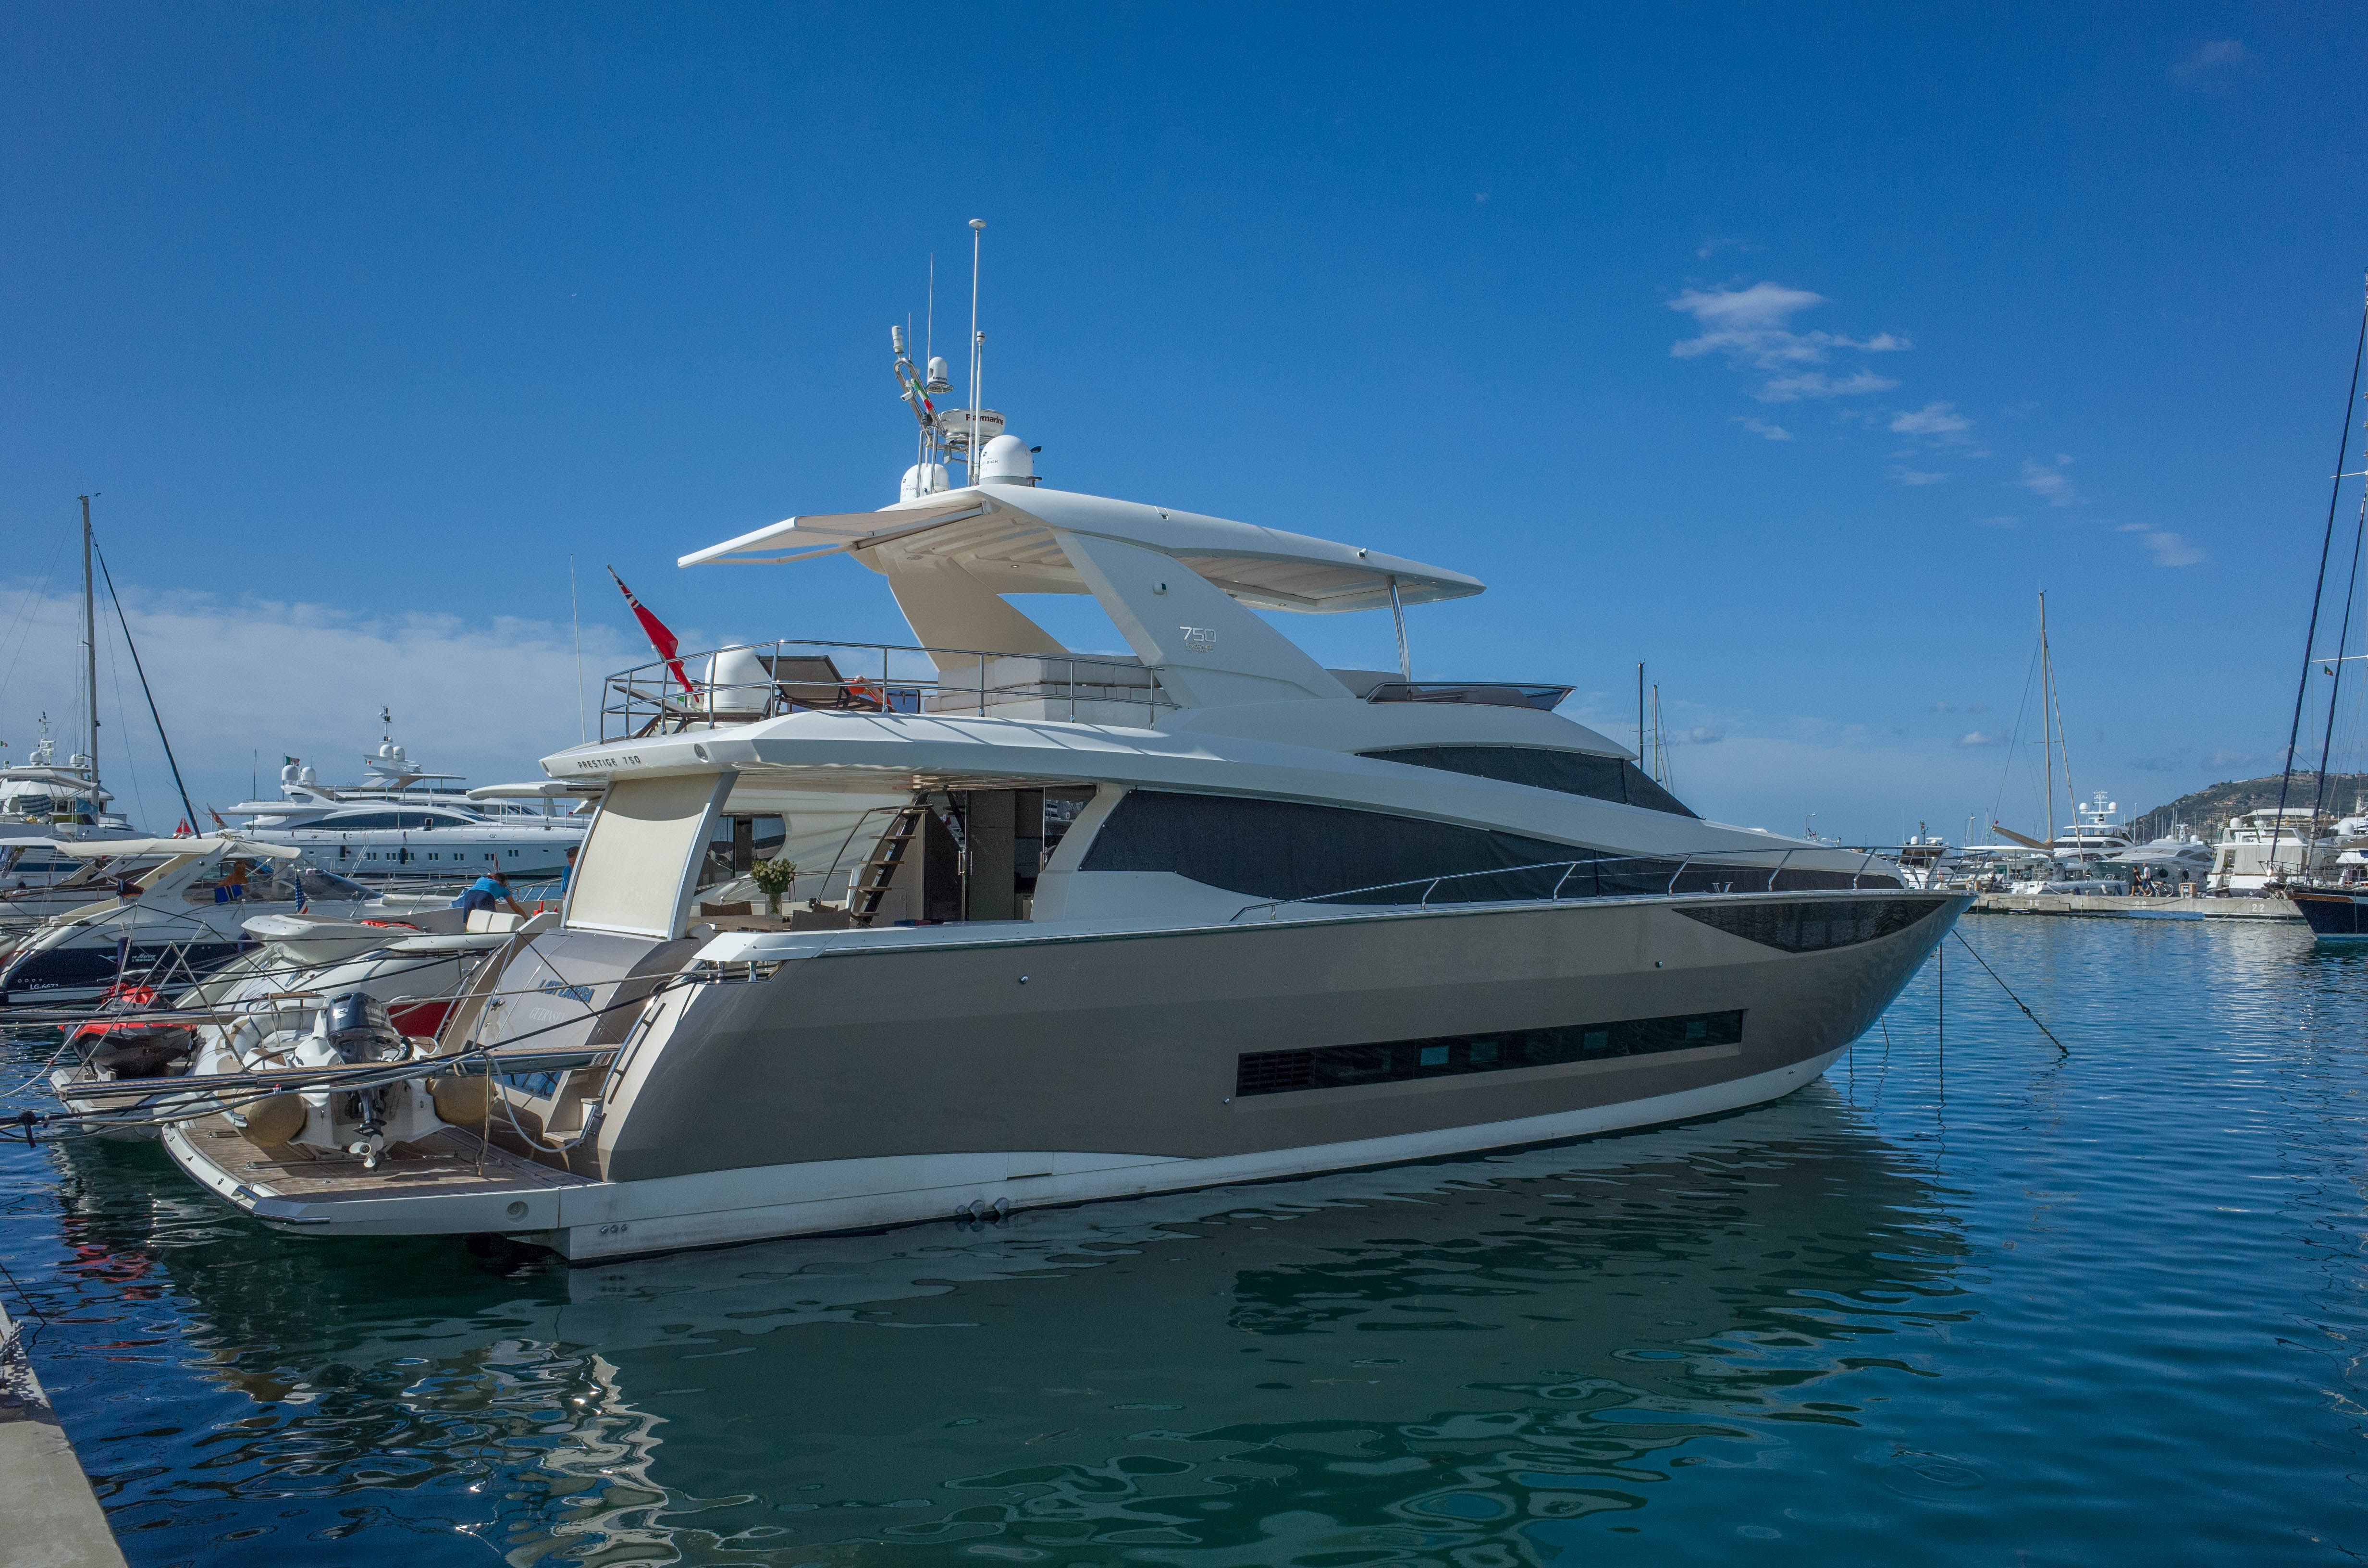 Prestige 750 Prestige 750 Yacht for sale